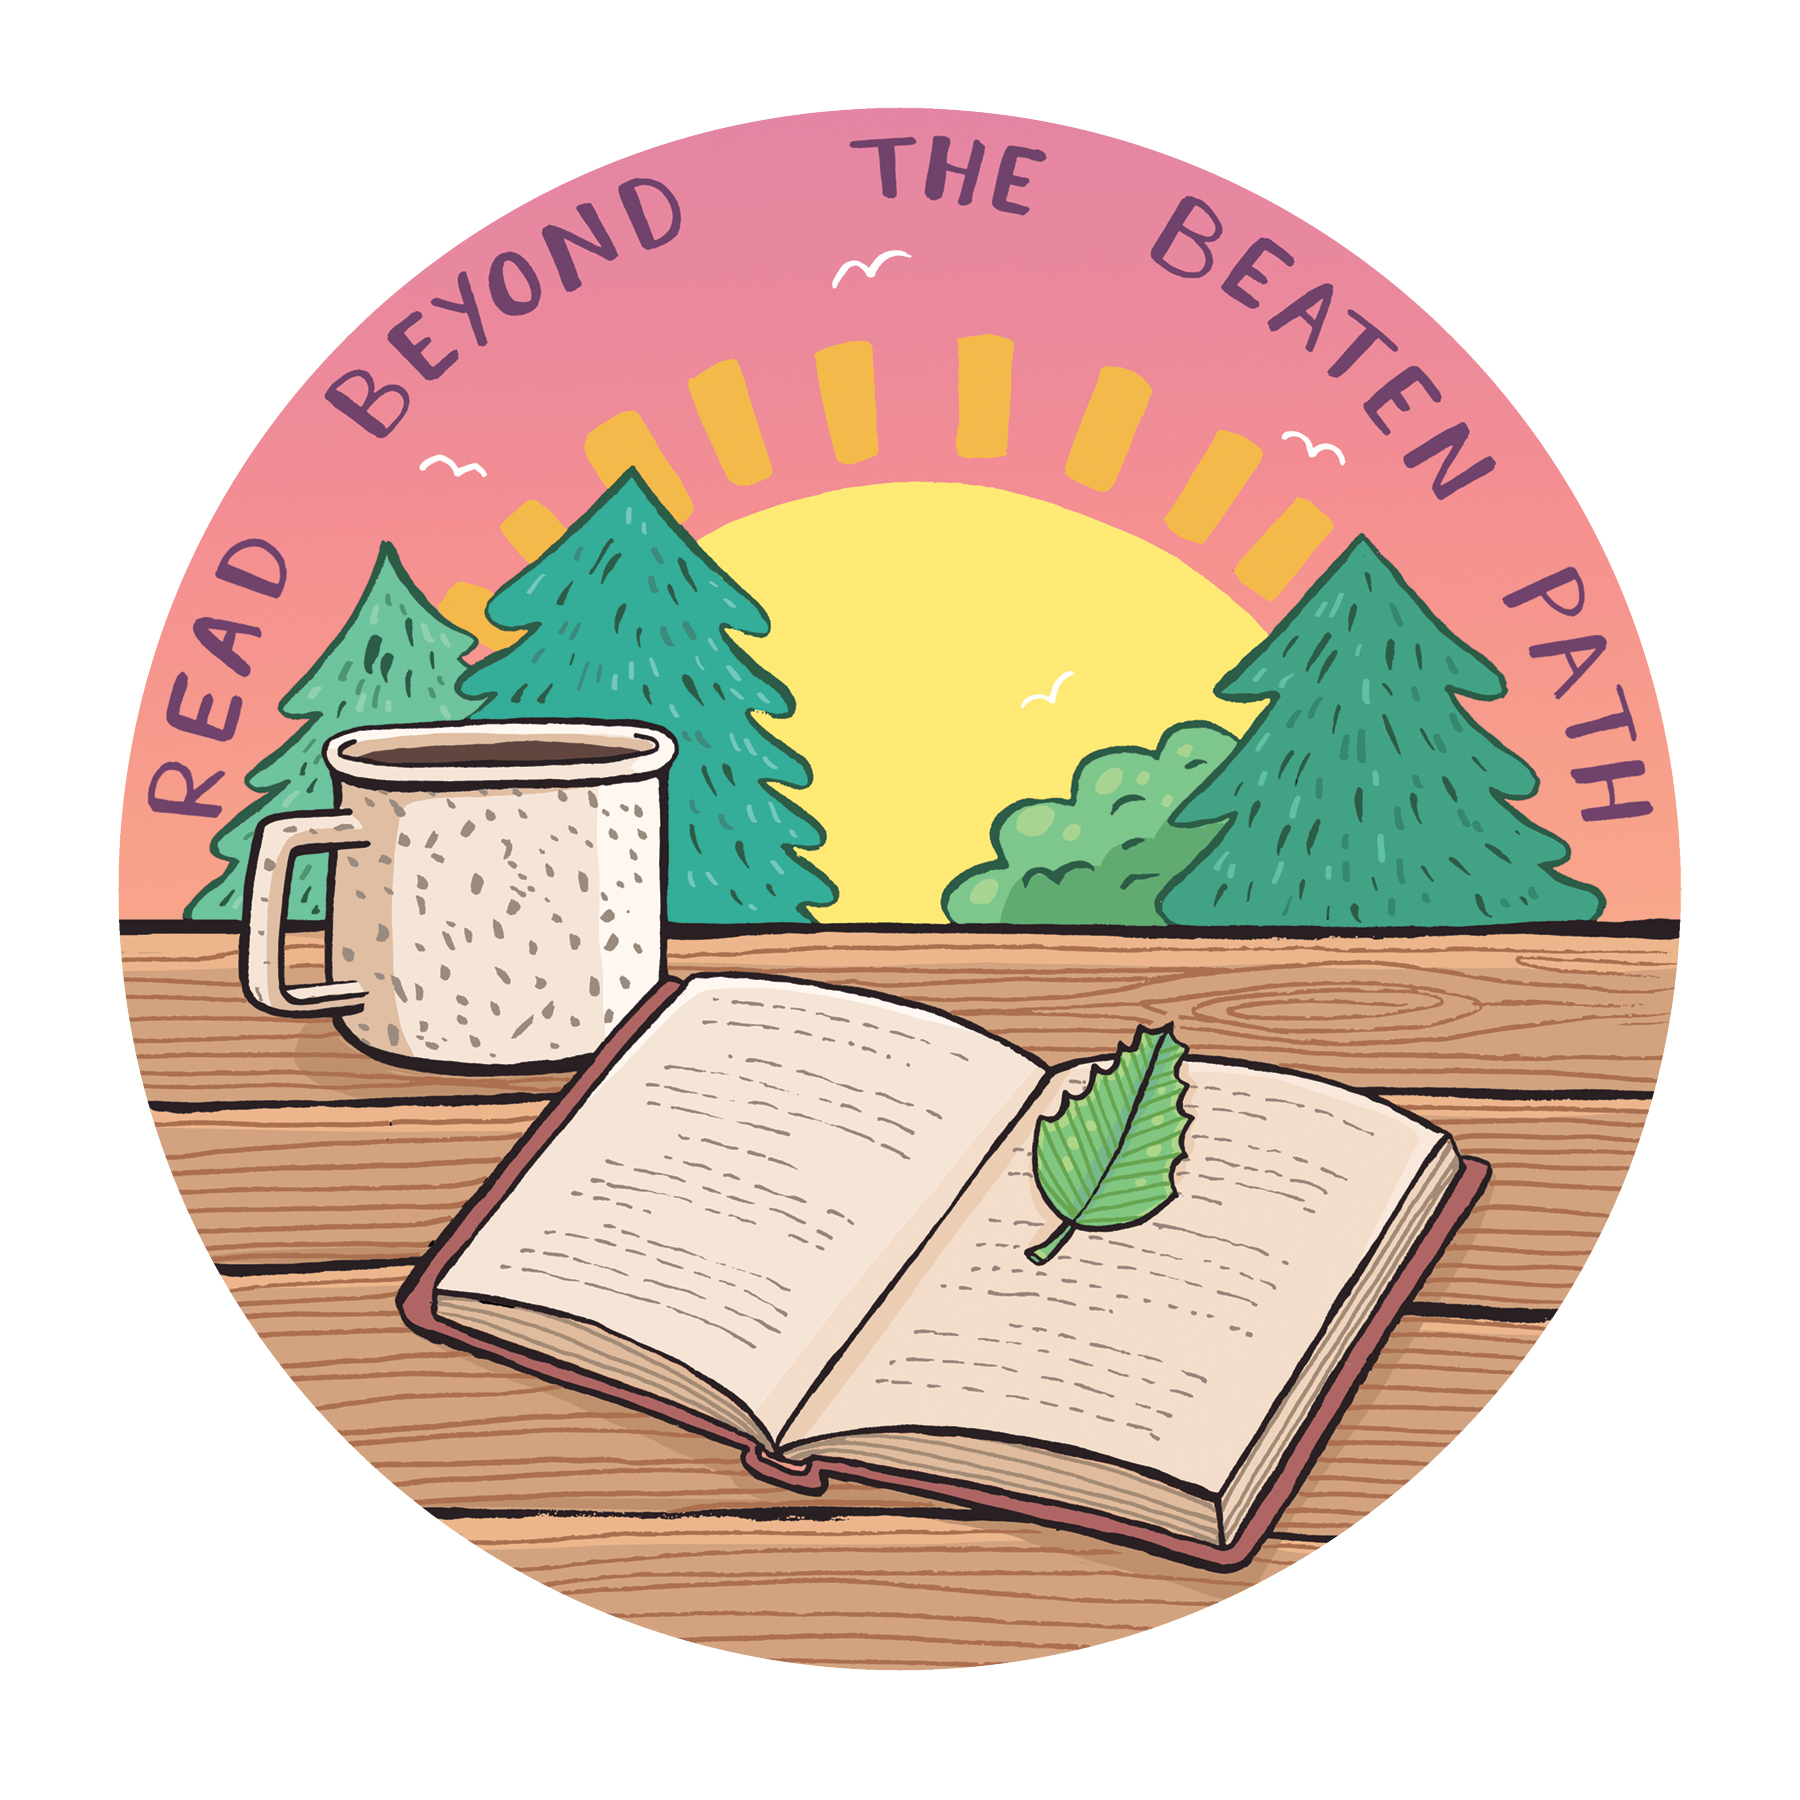 camp style badge with artwork of sunset, pine trees, a mug, and an open book